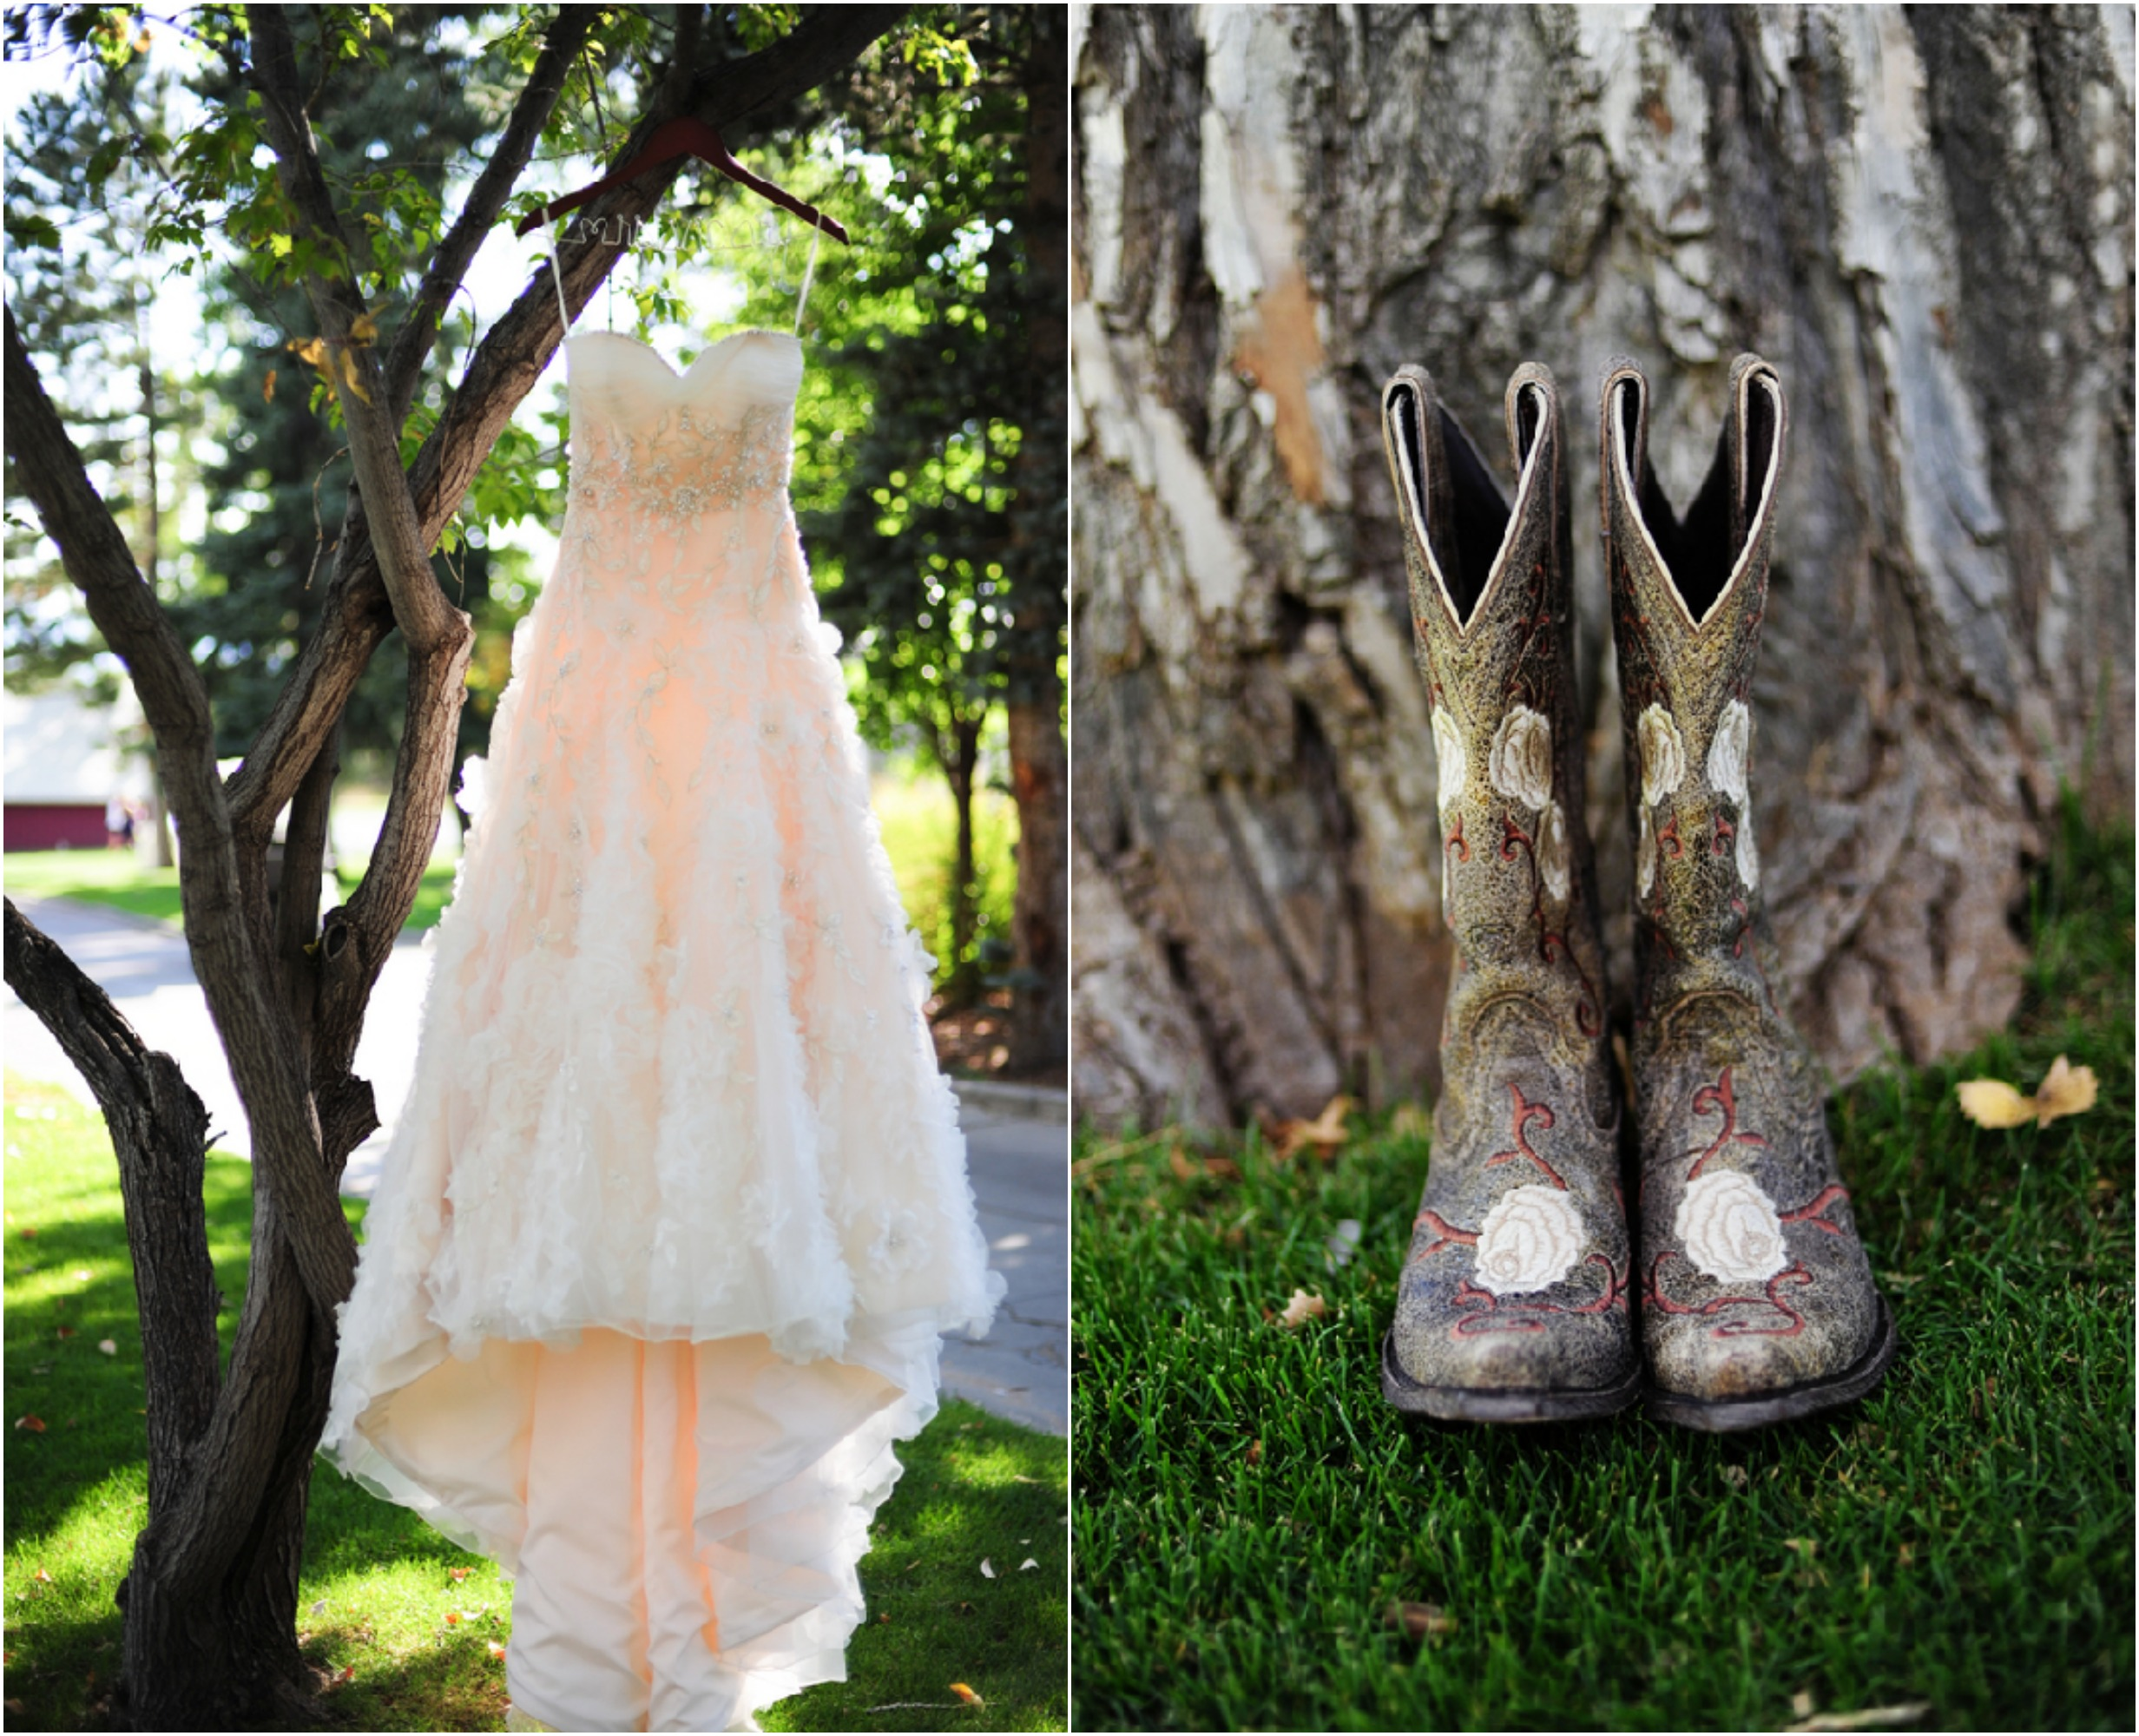 wedding dress boots country themed wedding dresses Country Wedding Dresses With Cowboy Boots Wedding Gown With Cowboy